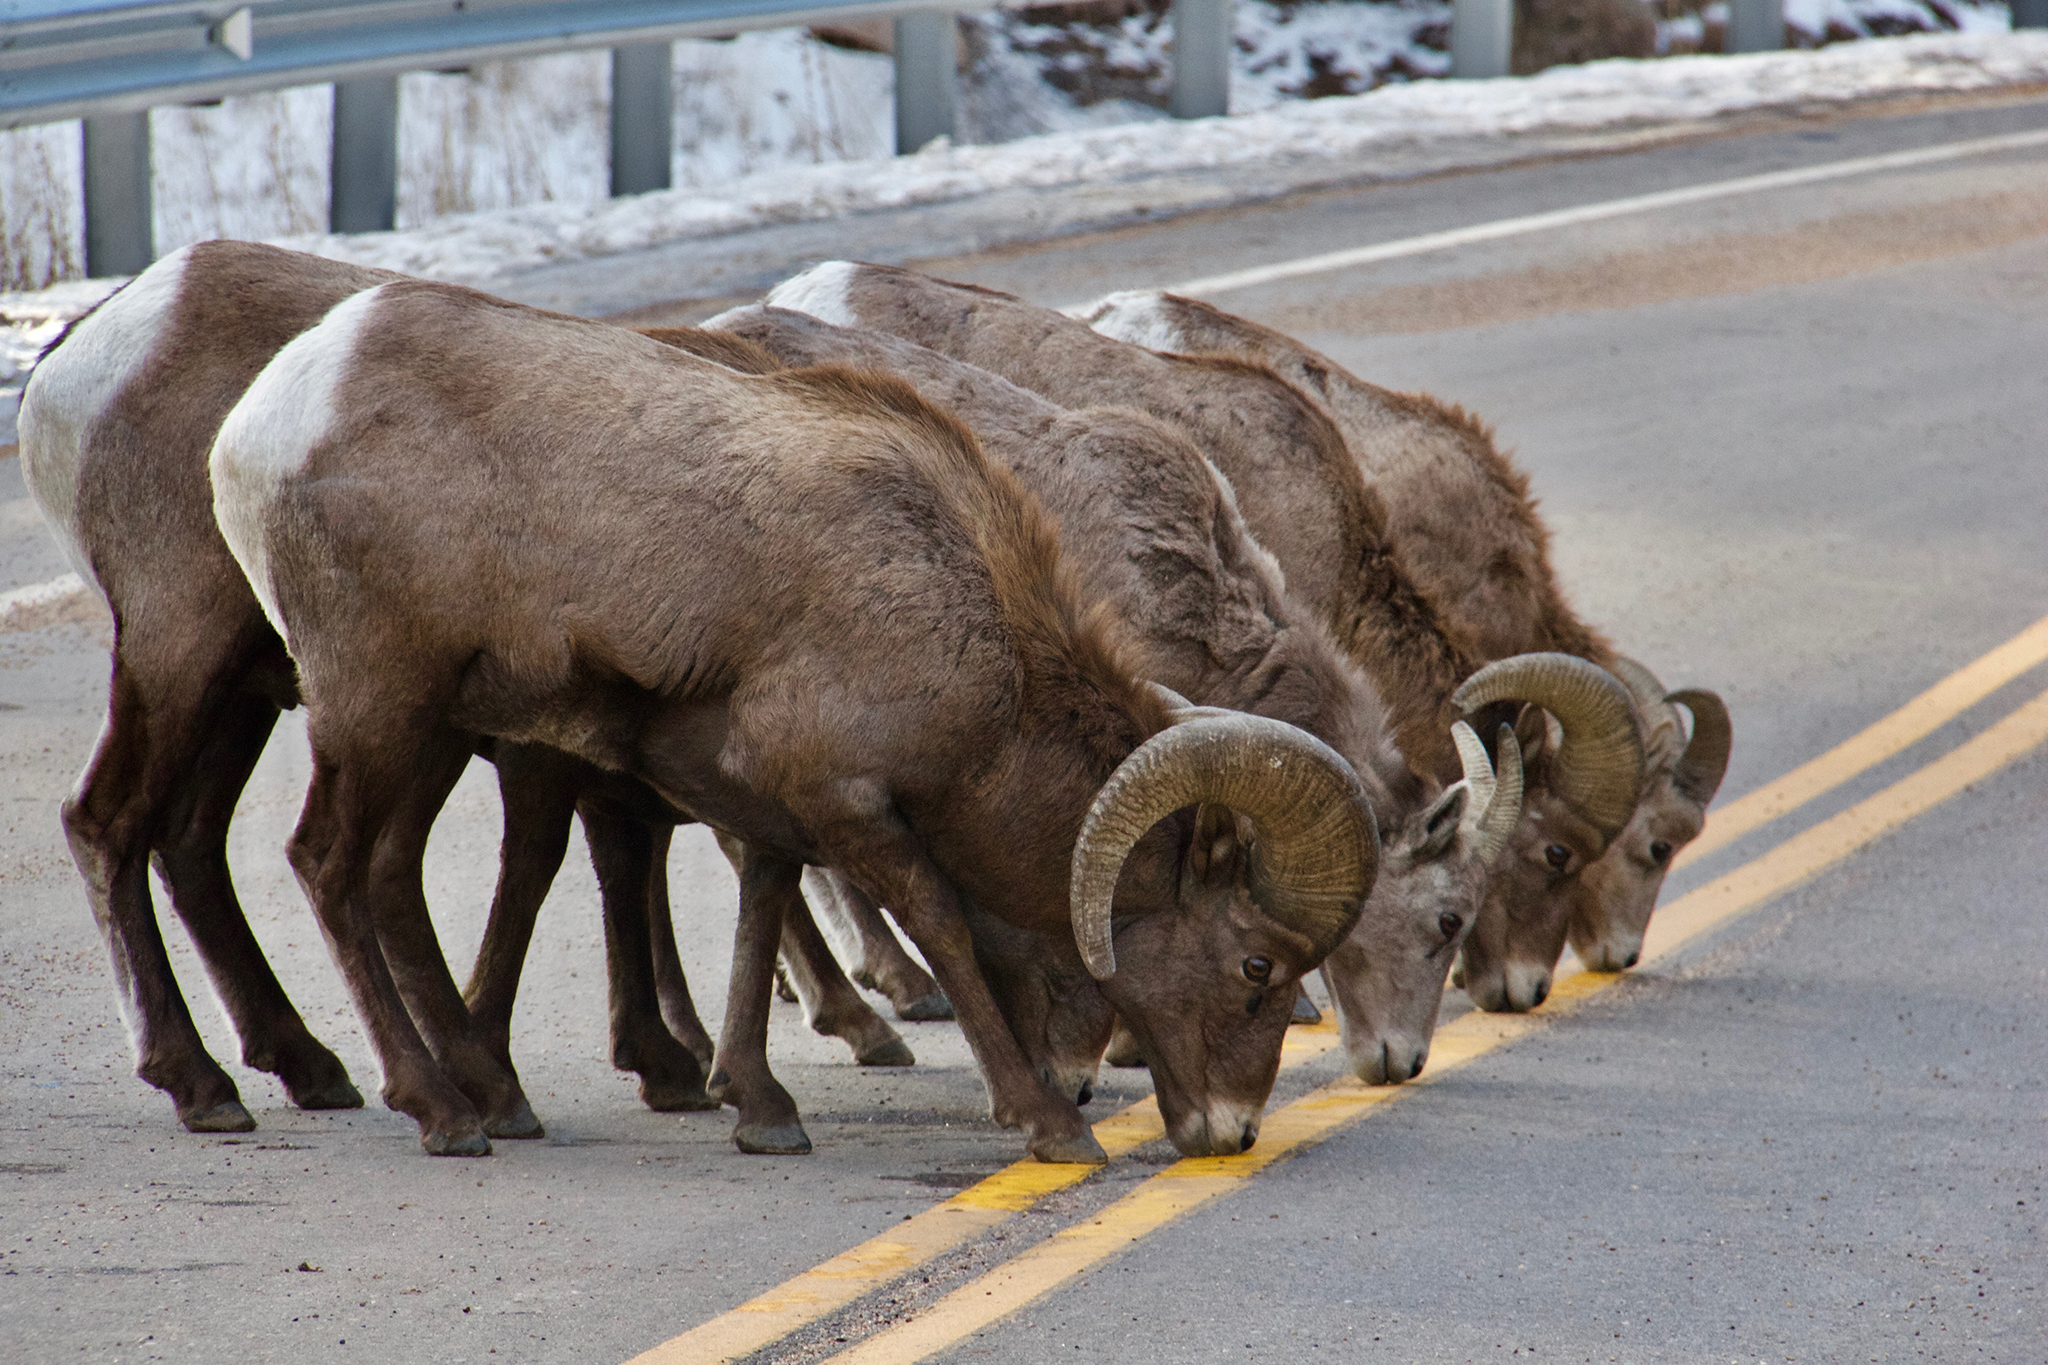 Big Horn Sheep licking the salt on the road